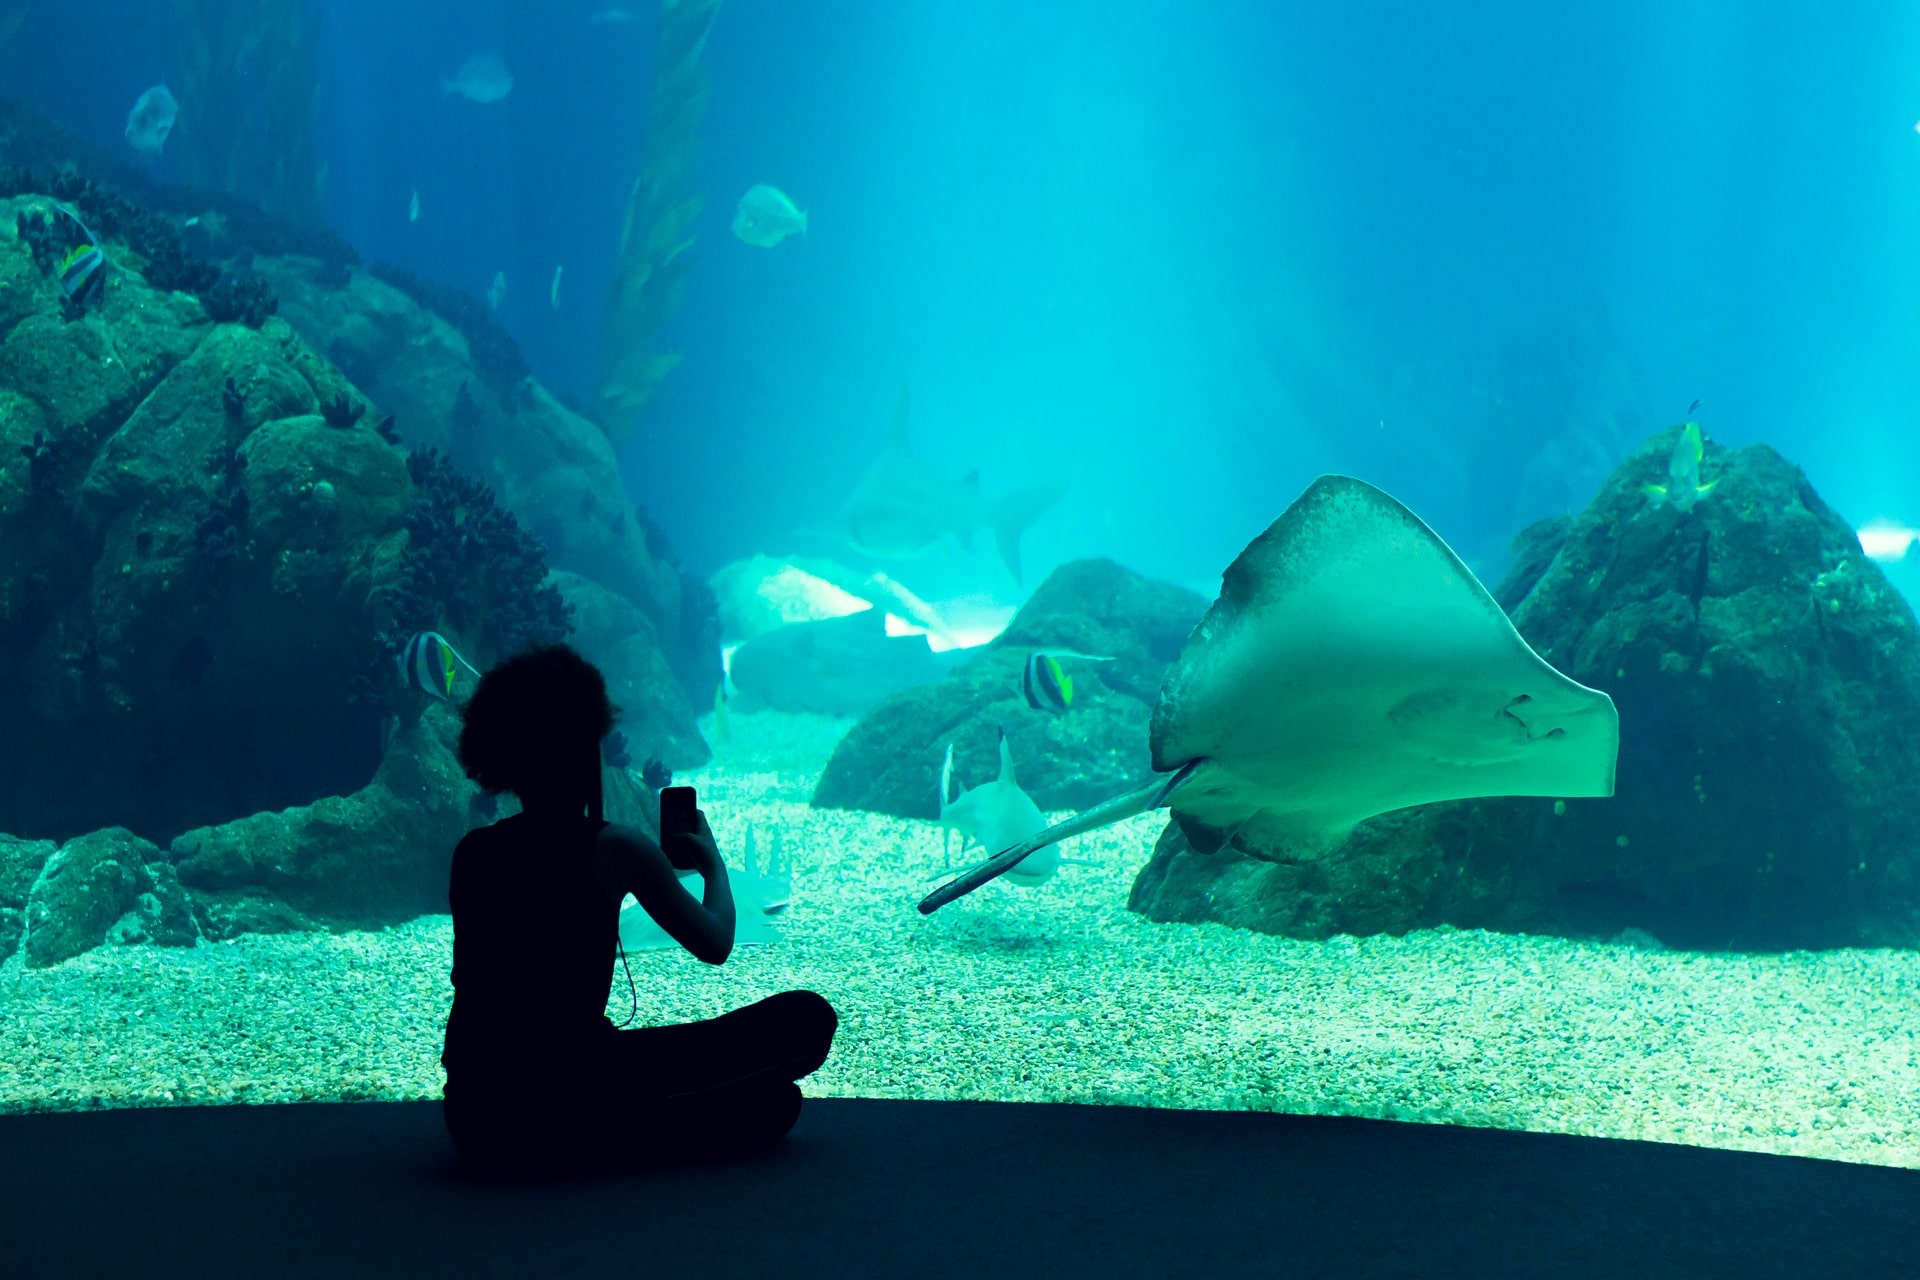 Visiting Lisbon's aquarium is an amazing thing to do in Portugal